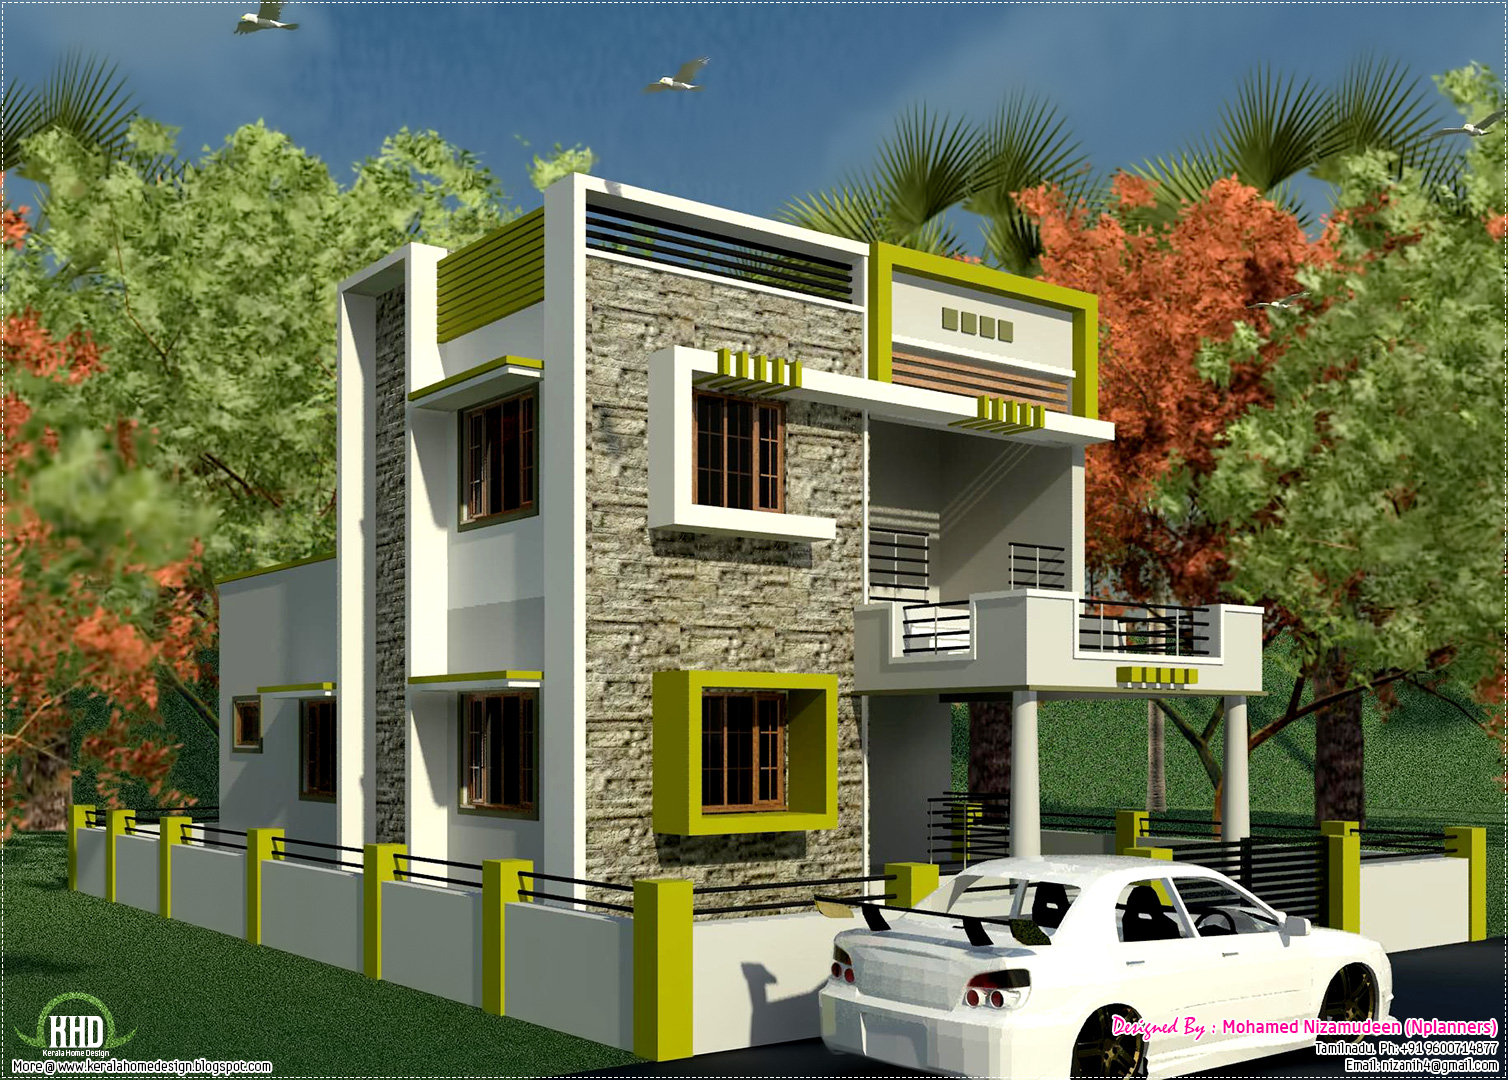 South Indian style house. South Indian style new modern 1460 sq  feet house design   Kerala